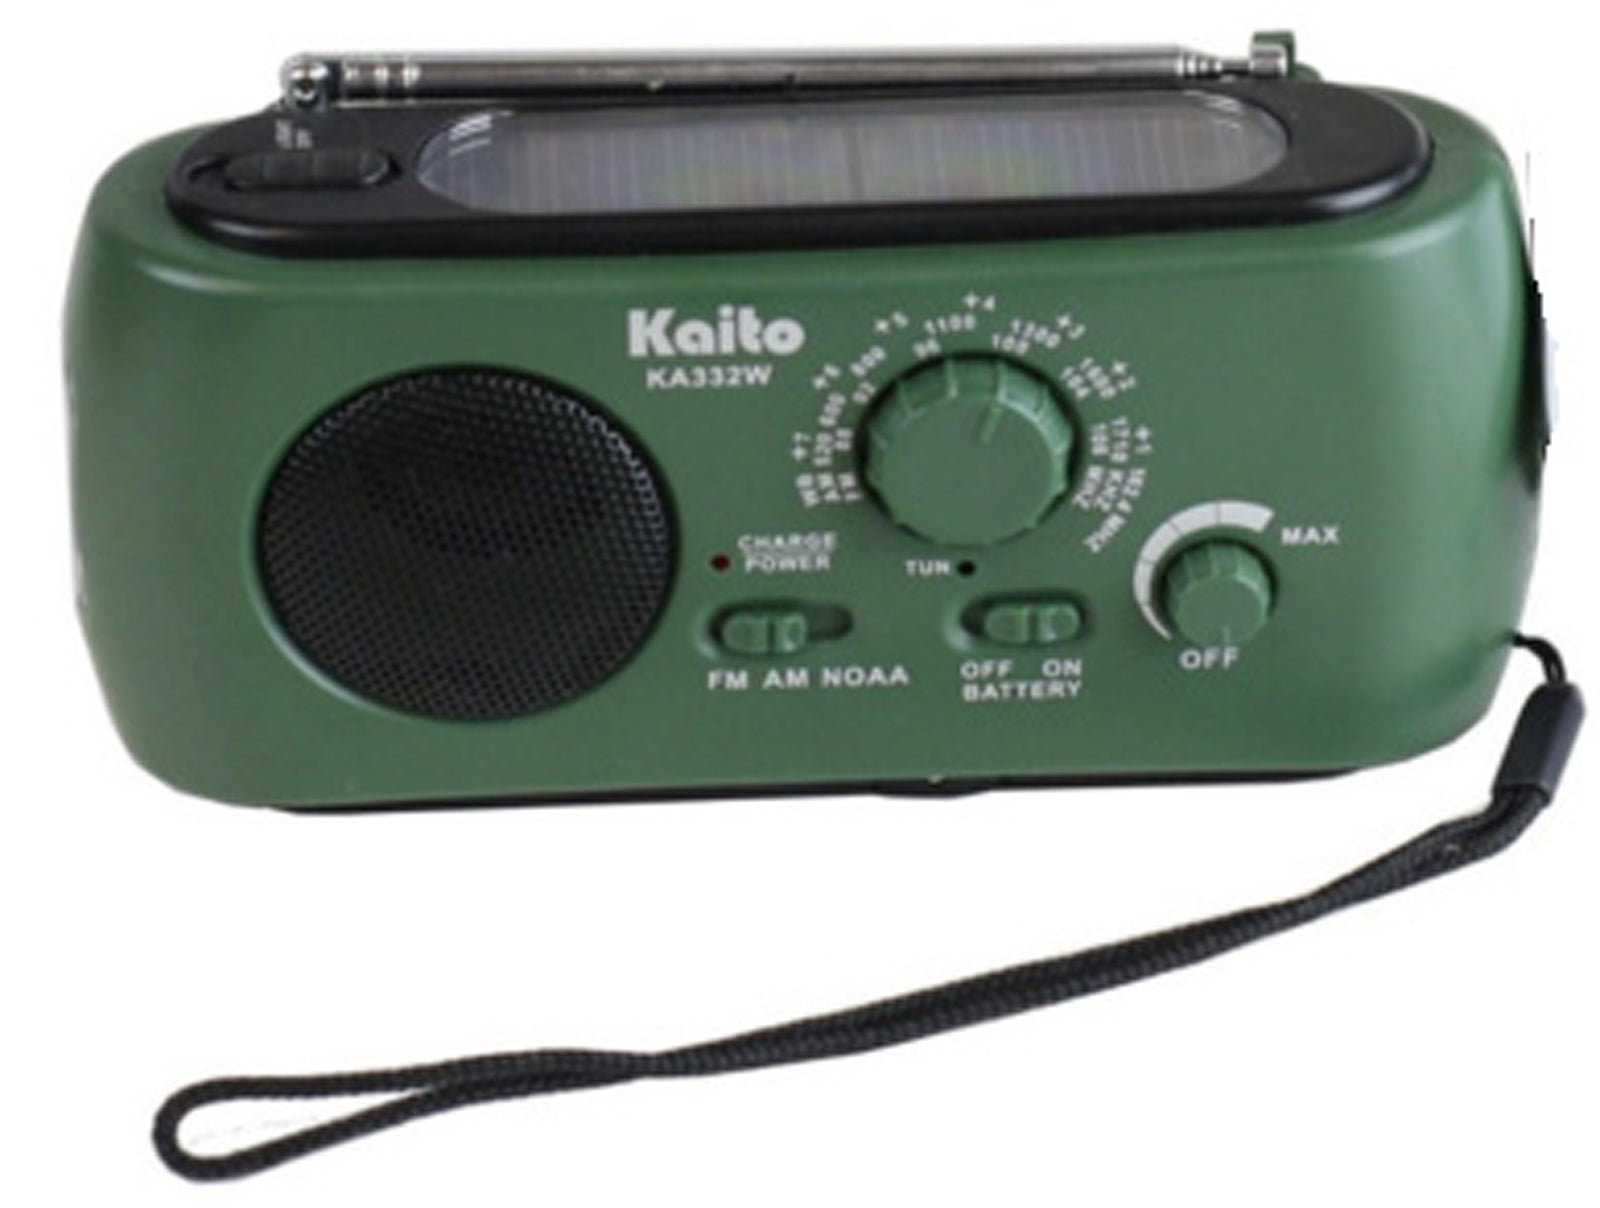 Kaito KA332W Weather Radio with AM/FM Flashlight Solar Crank